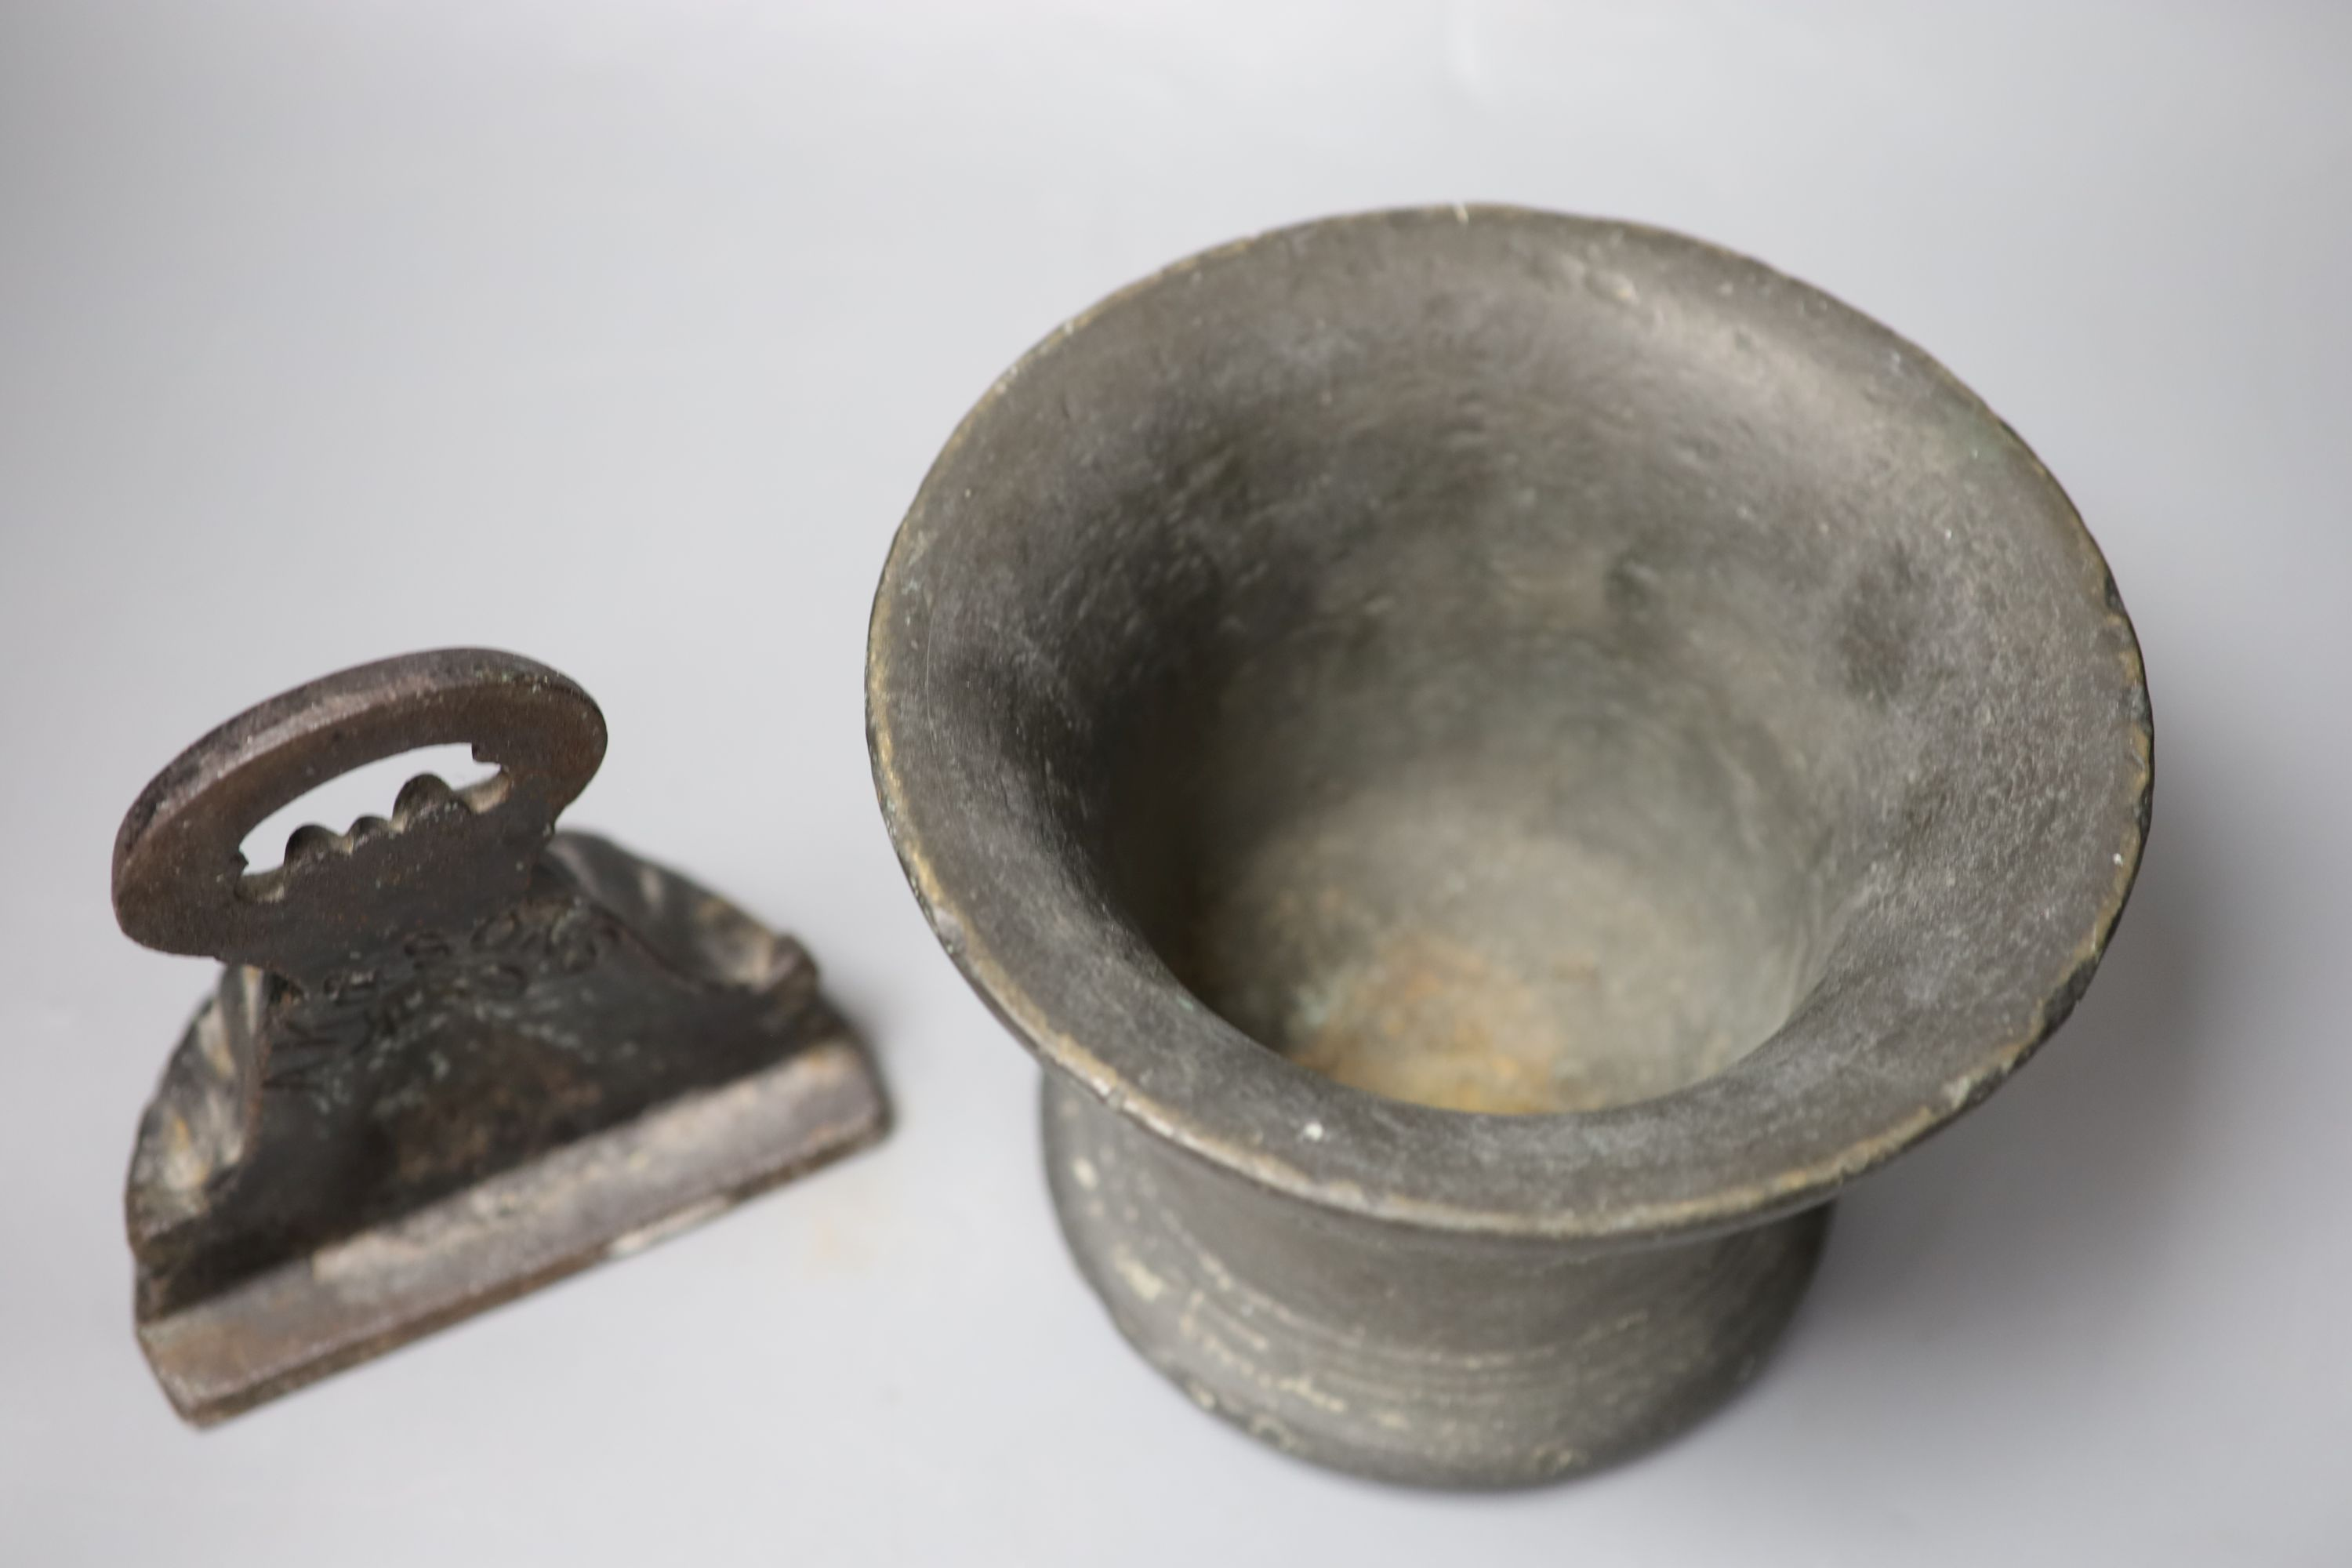 A 16th/17th century bronze mortar, height 16cm, and a cast iron doorstop - Image 3 of 3